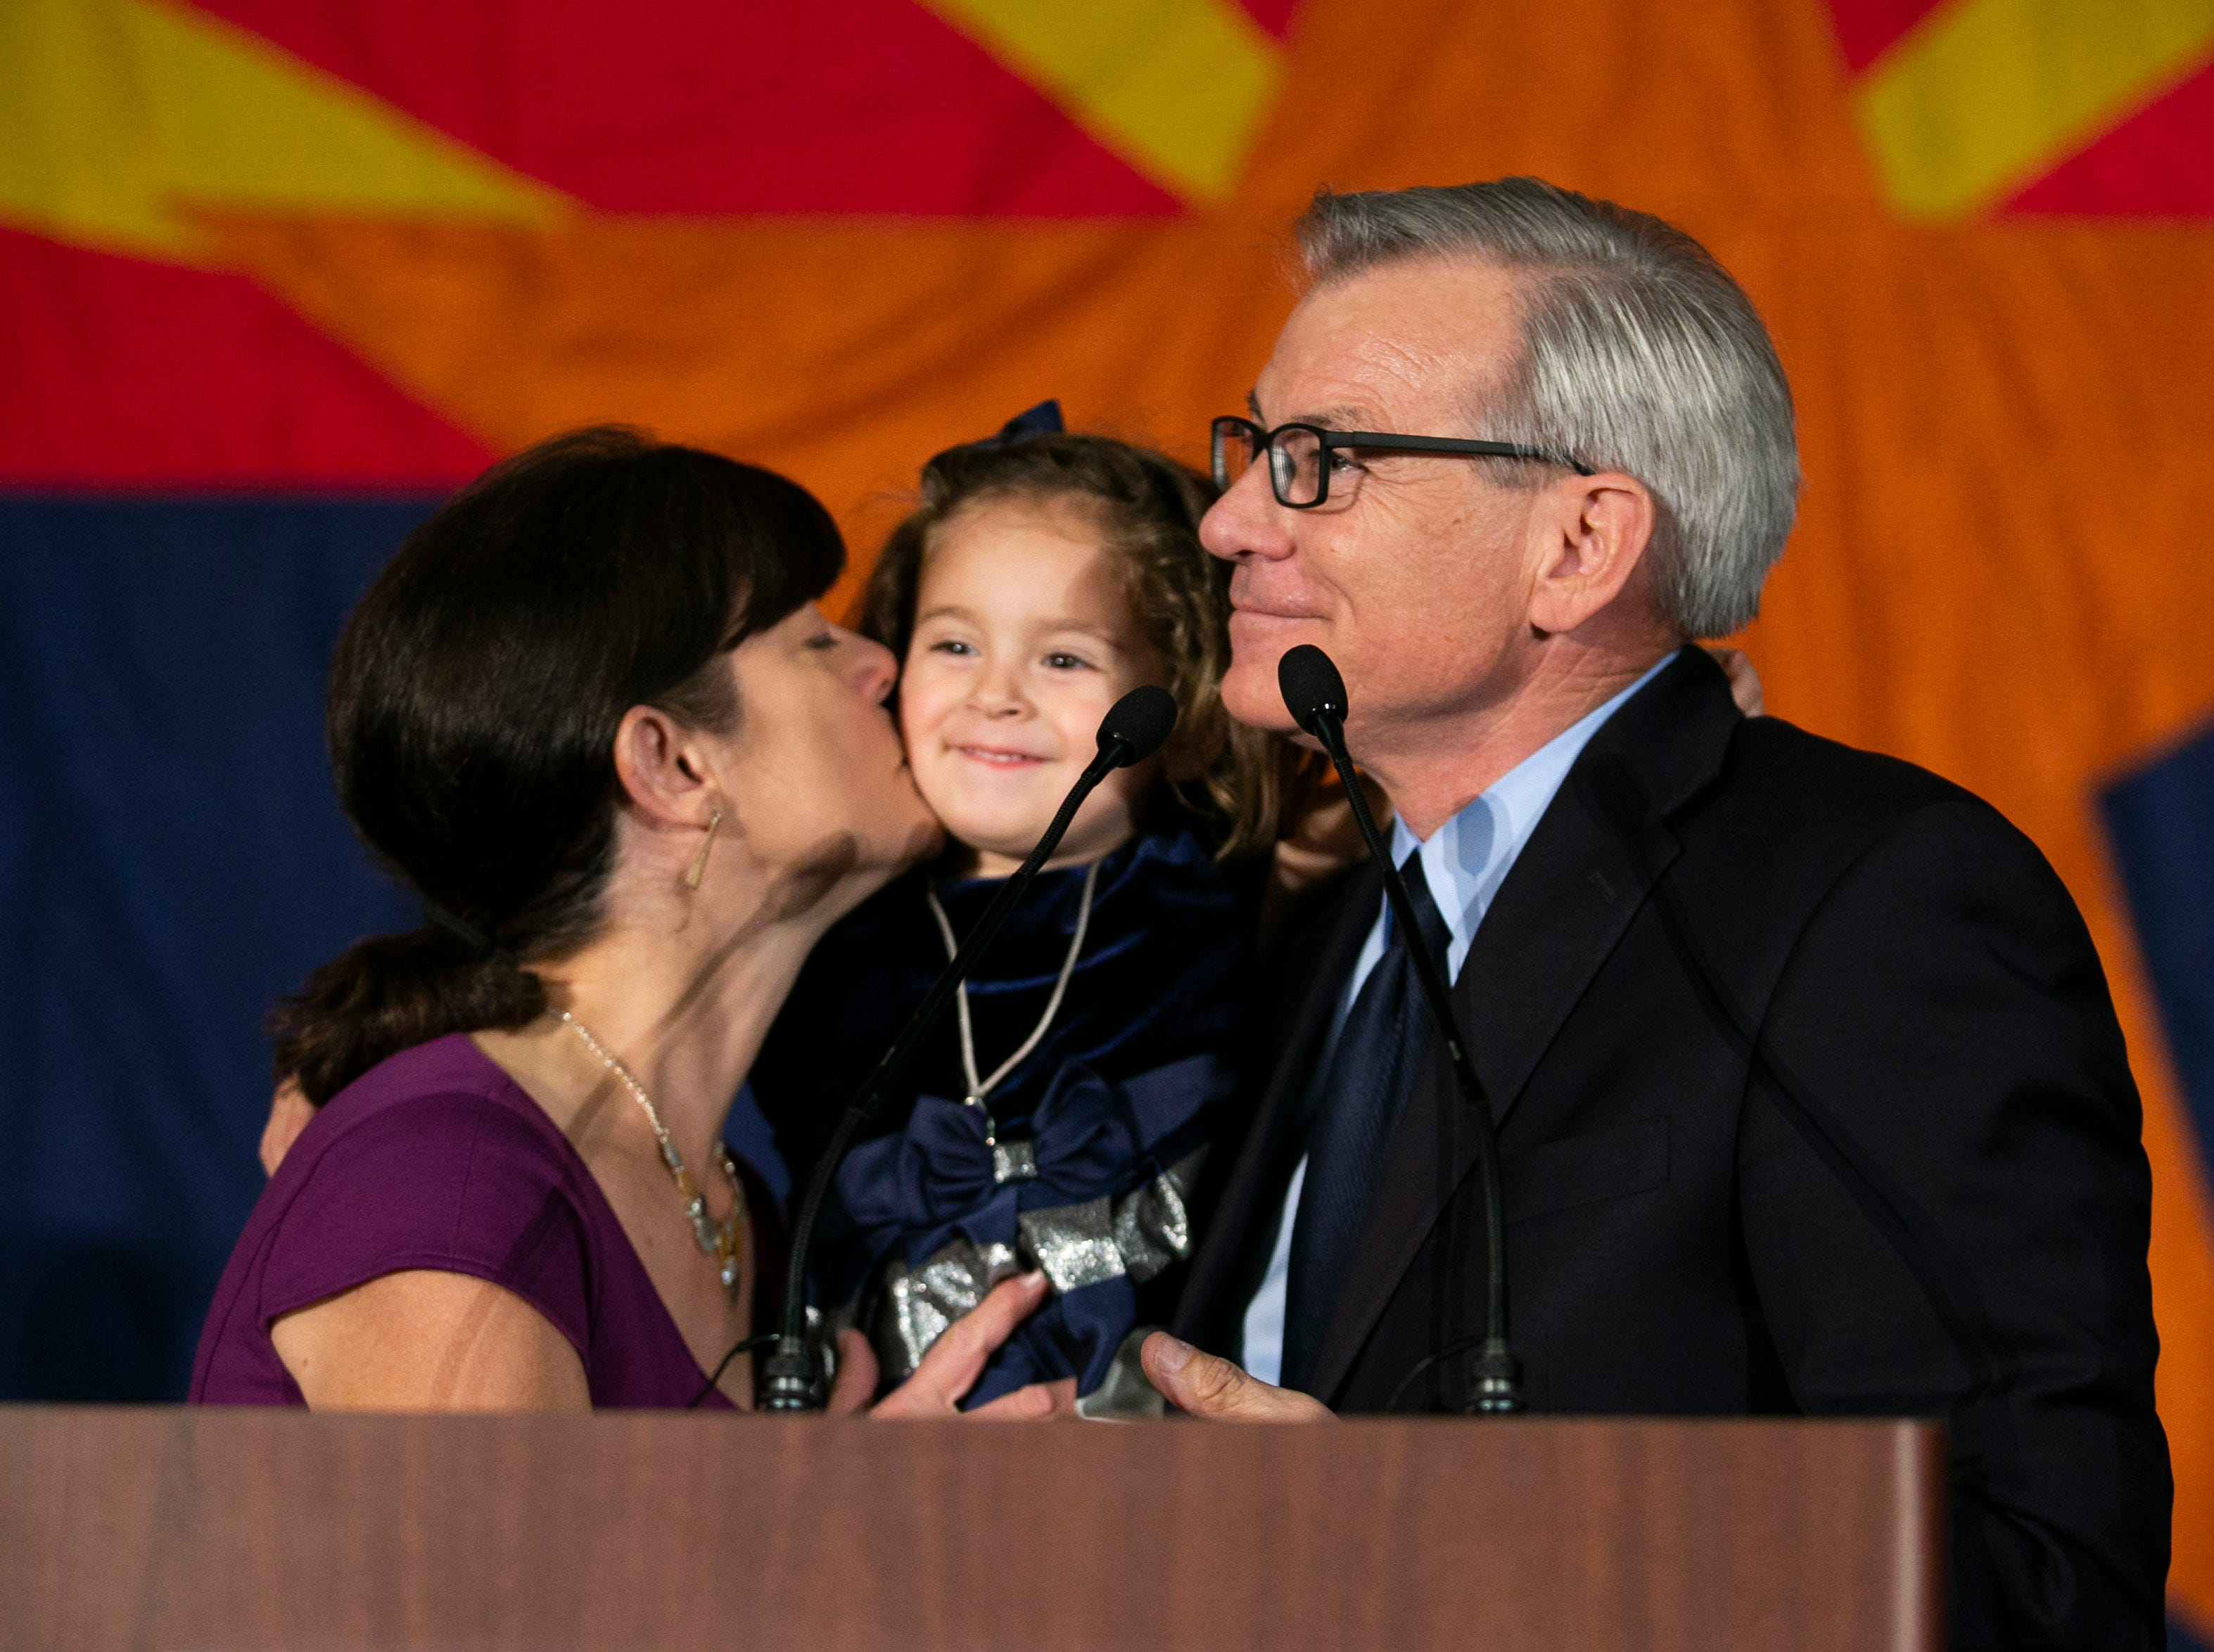 U.S. Representative David Schweikert speaks as his wife, Joyce, kisses their daughter, Olivia, during the Republican watch party at the DoubleTree Resort in Scottsdale on Election Day for the midterms on Nov. 6, 2018.